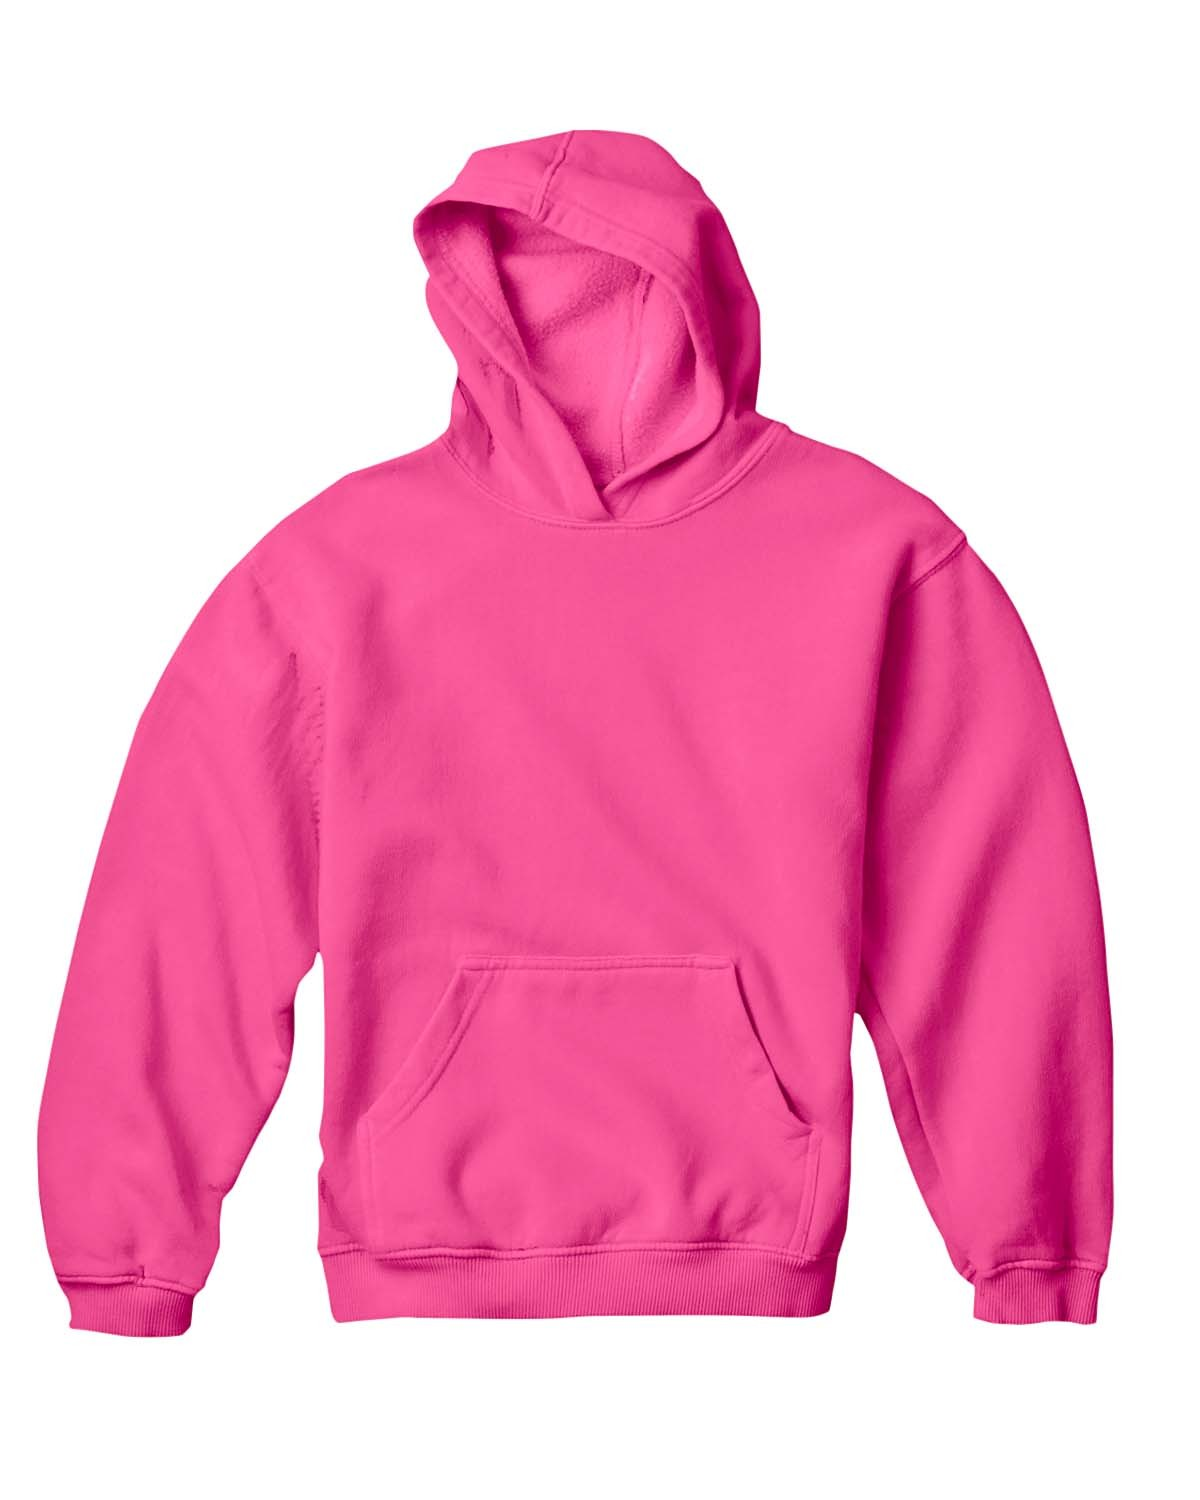 C8755 Comfort Colors Drop Ship NEON PINK